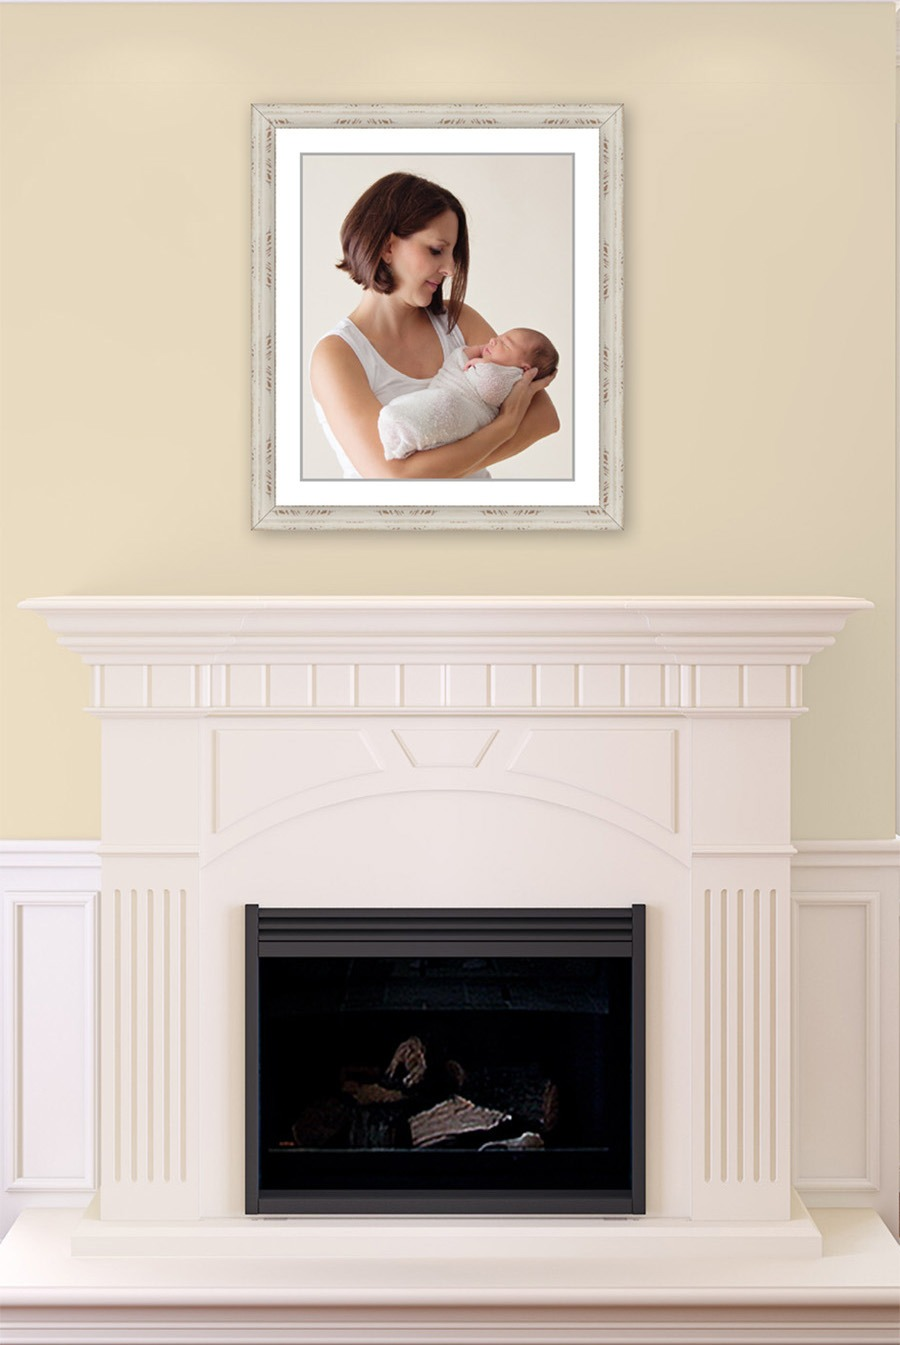 mom and swaddled baby color light high key framed wall portrait over fireplace